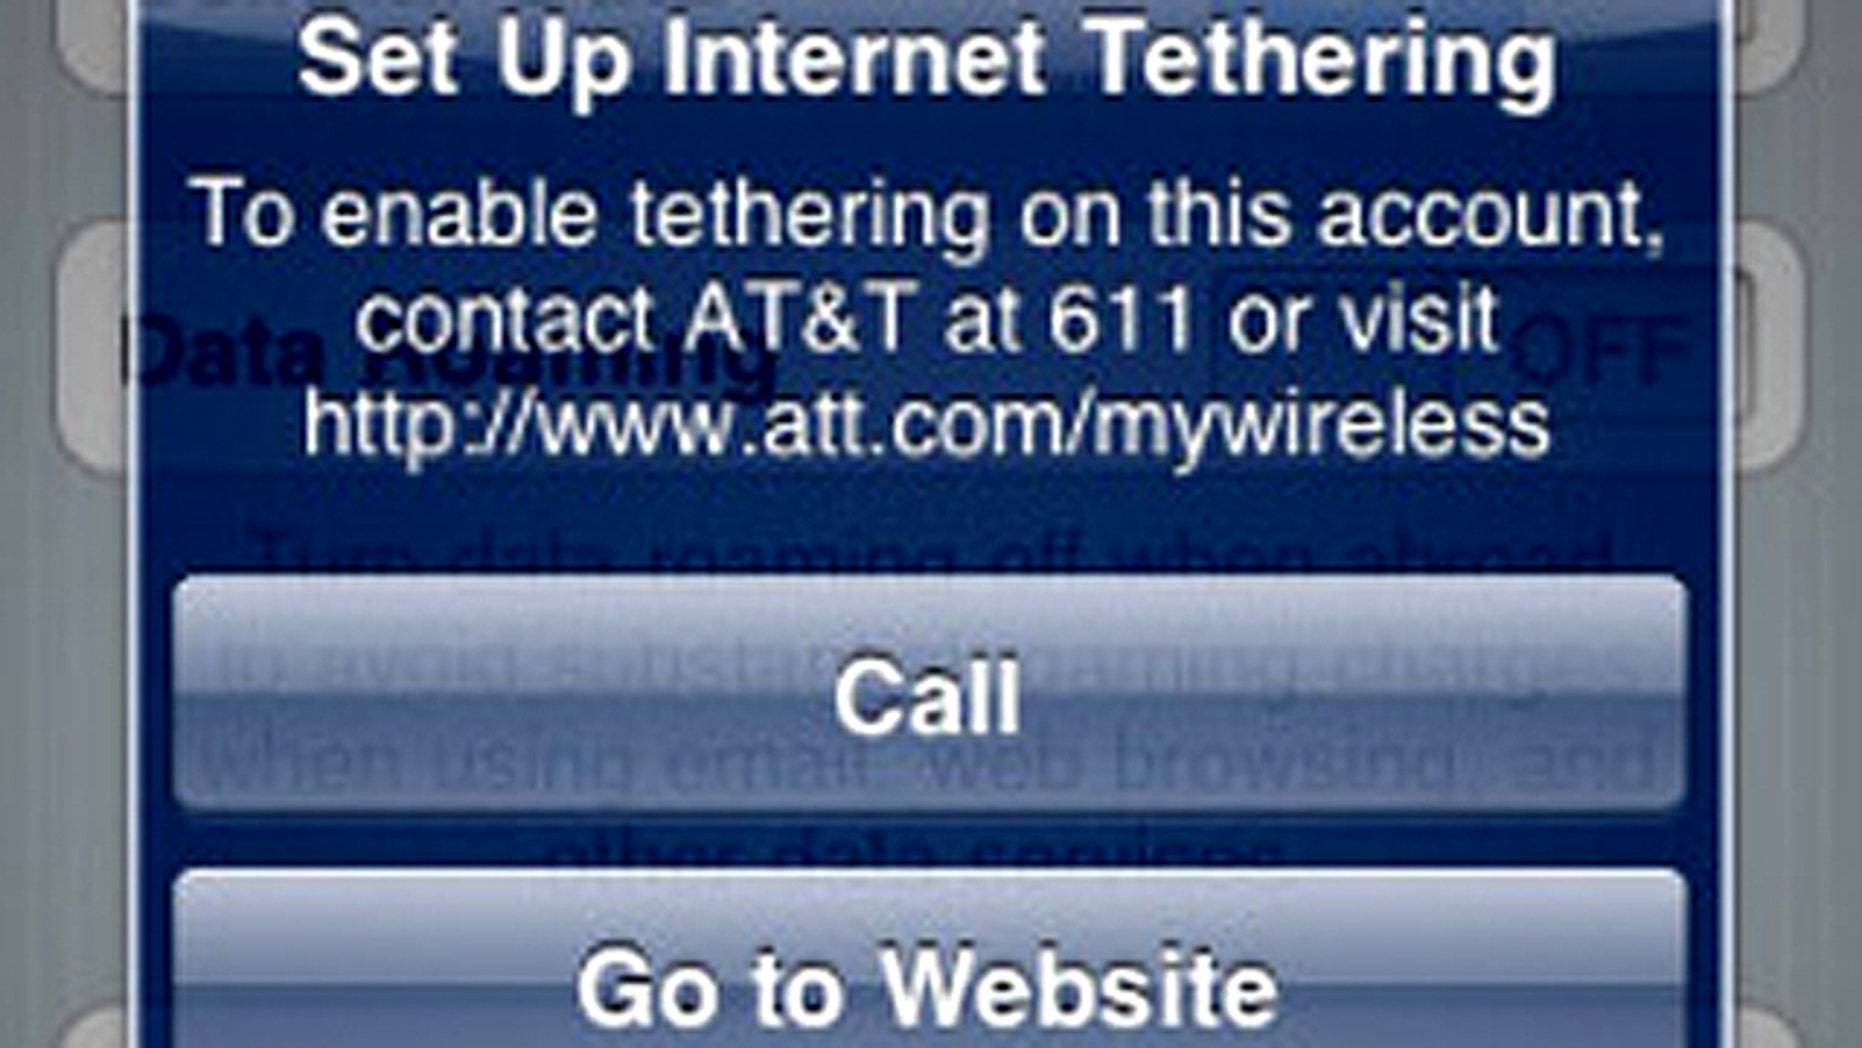 A beta version of Apple's forthcoming iPhone OS 4.0 software reportedly comes with a long-overdue feature: Internet tethering.